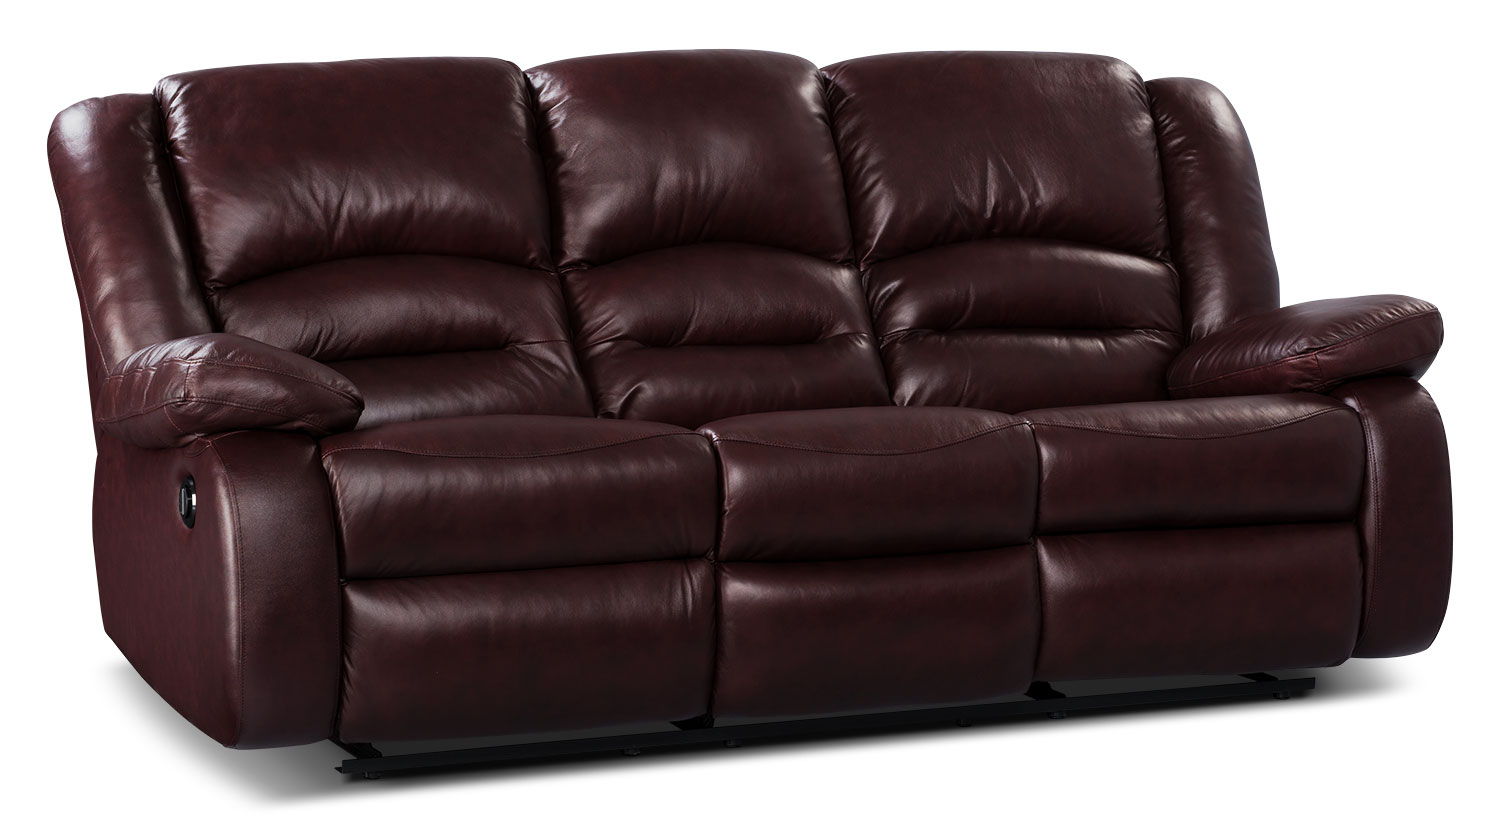 Toreno Genuine Leather Power Reclining Sofa Burgundy The Brick